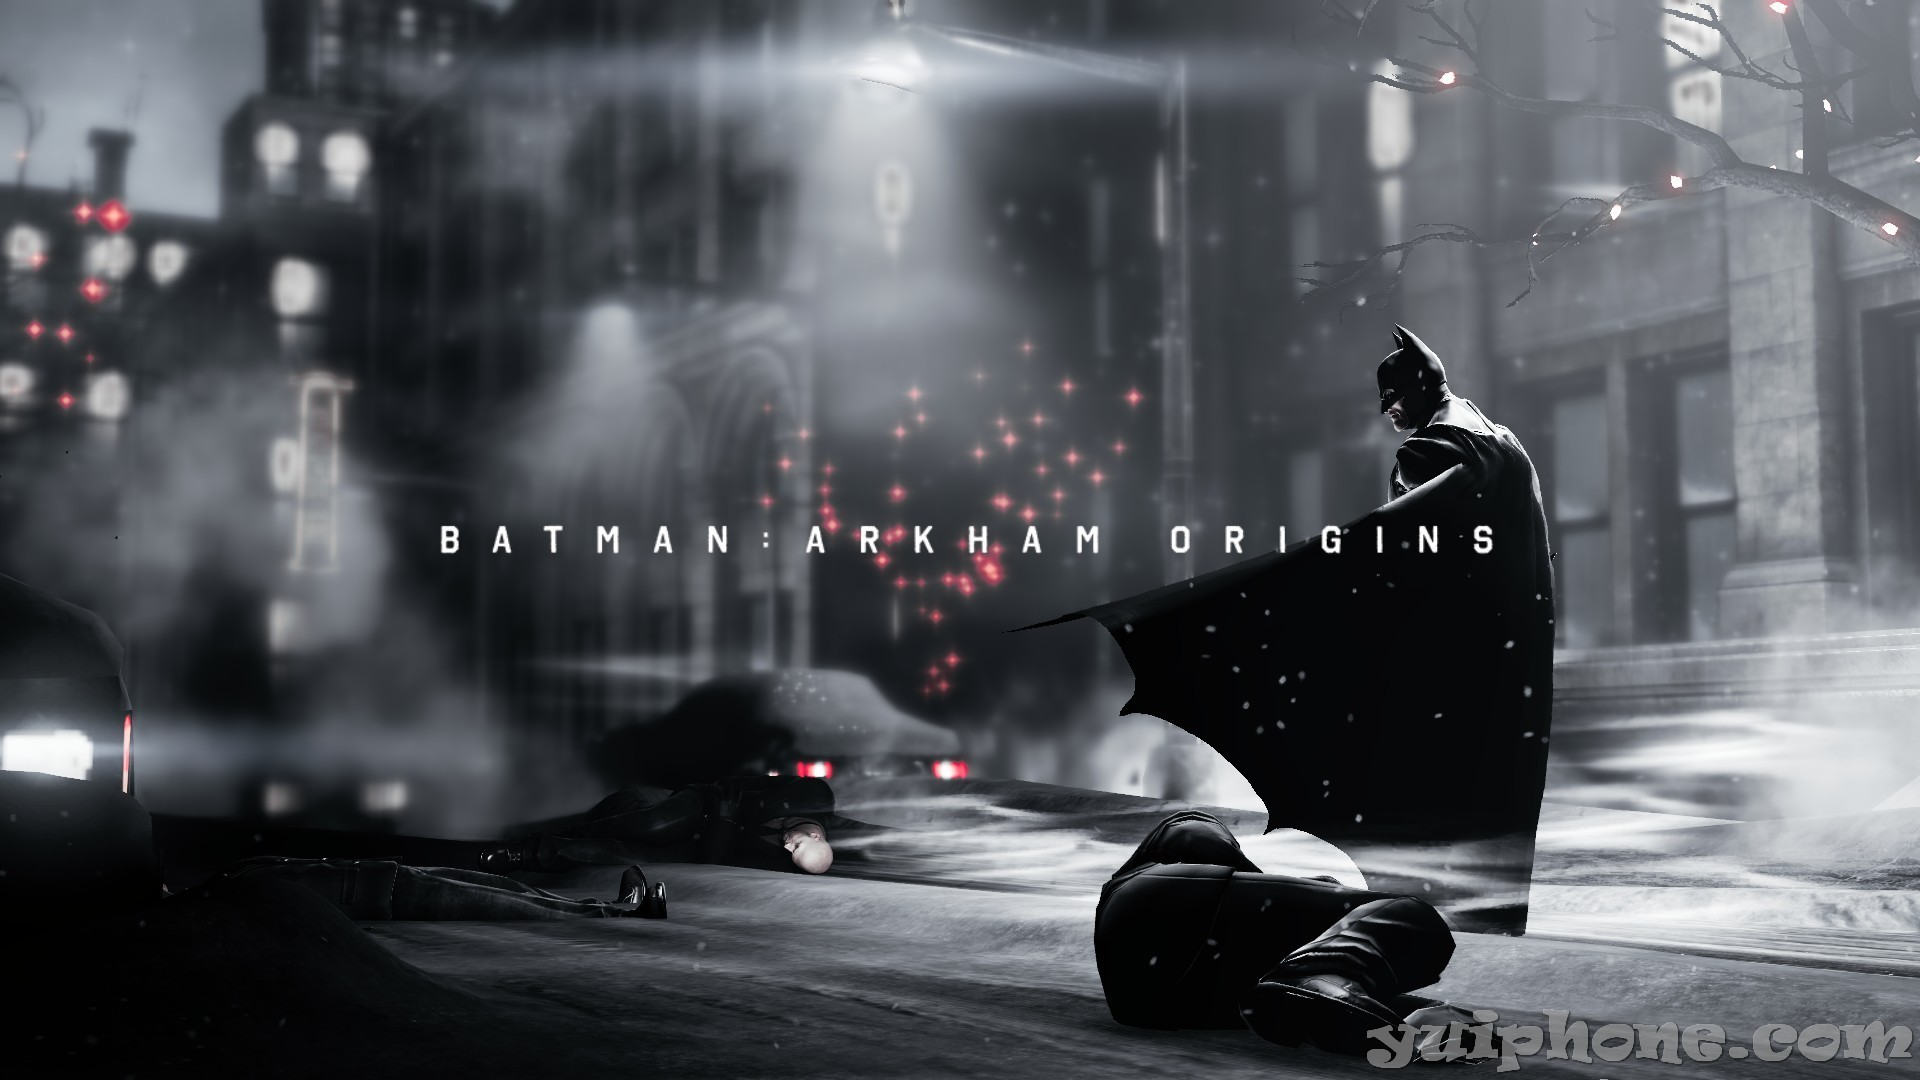 Joker Batman Arkham Origins Wallpaper